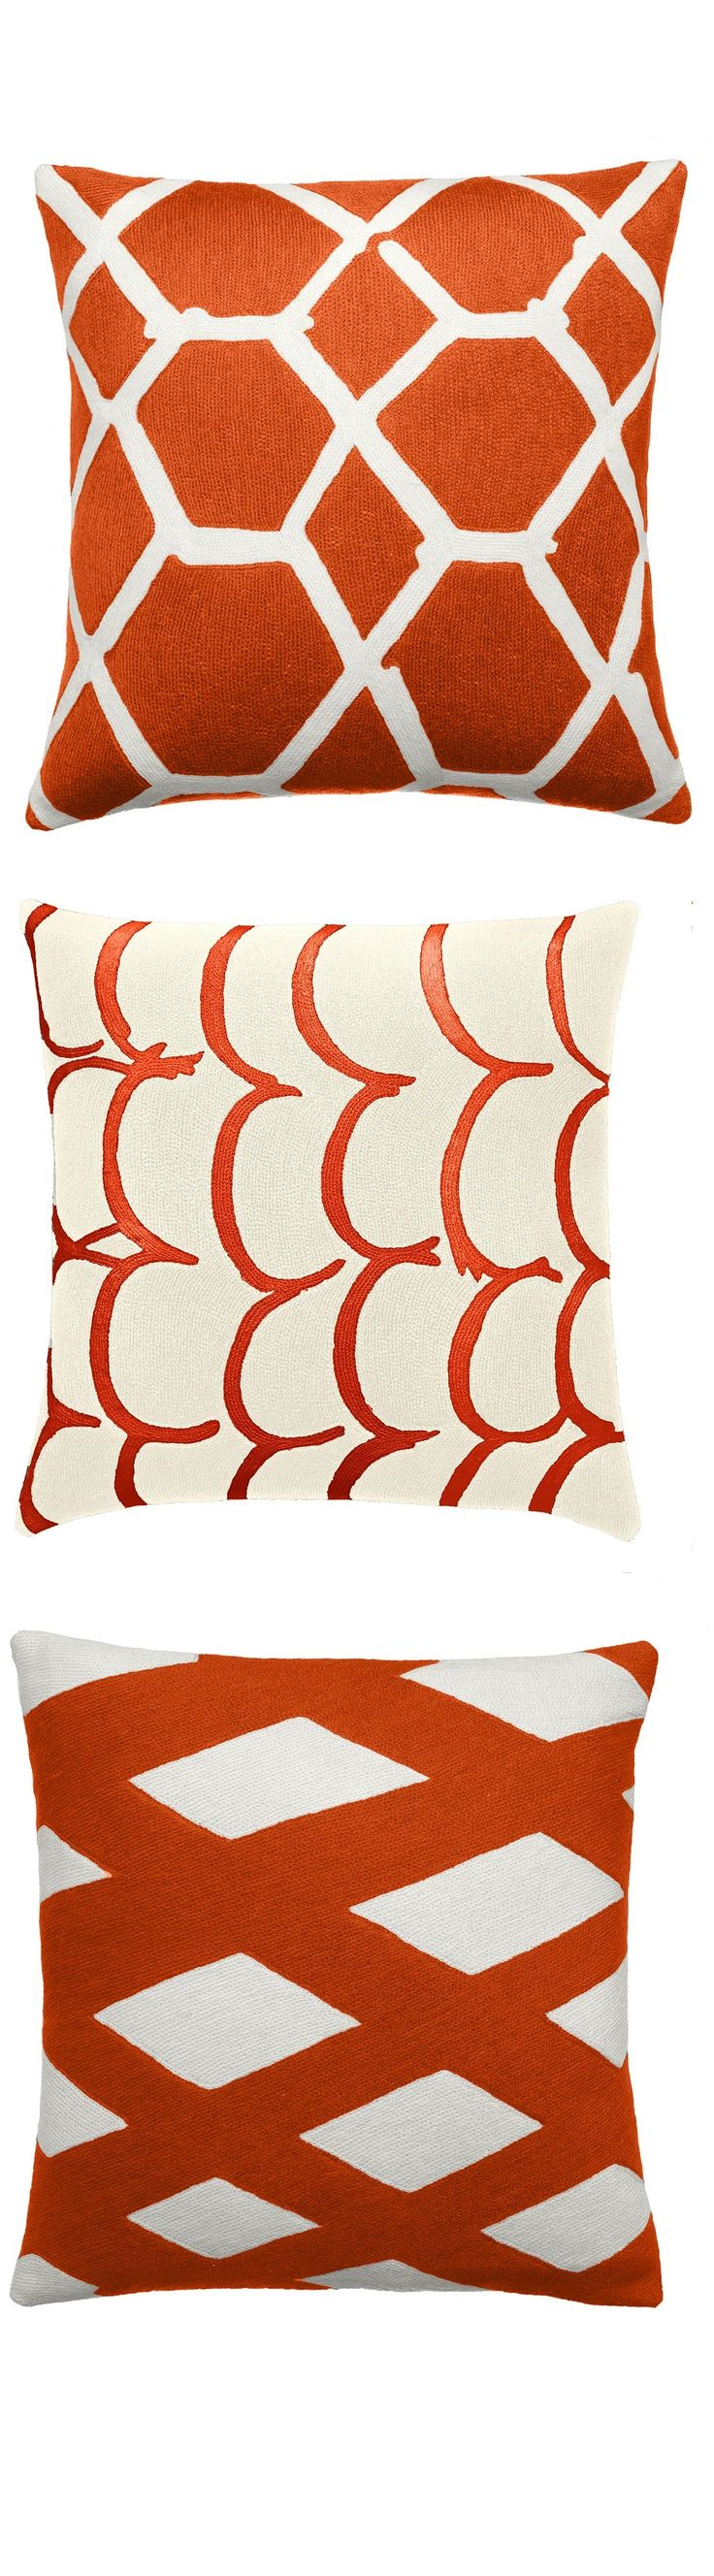 Best 25 Contemporary pillow cases ideas on Pinterest